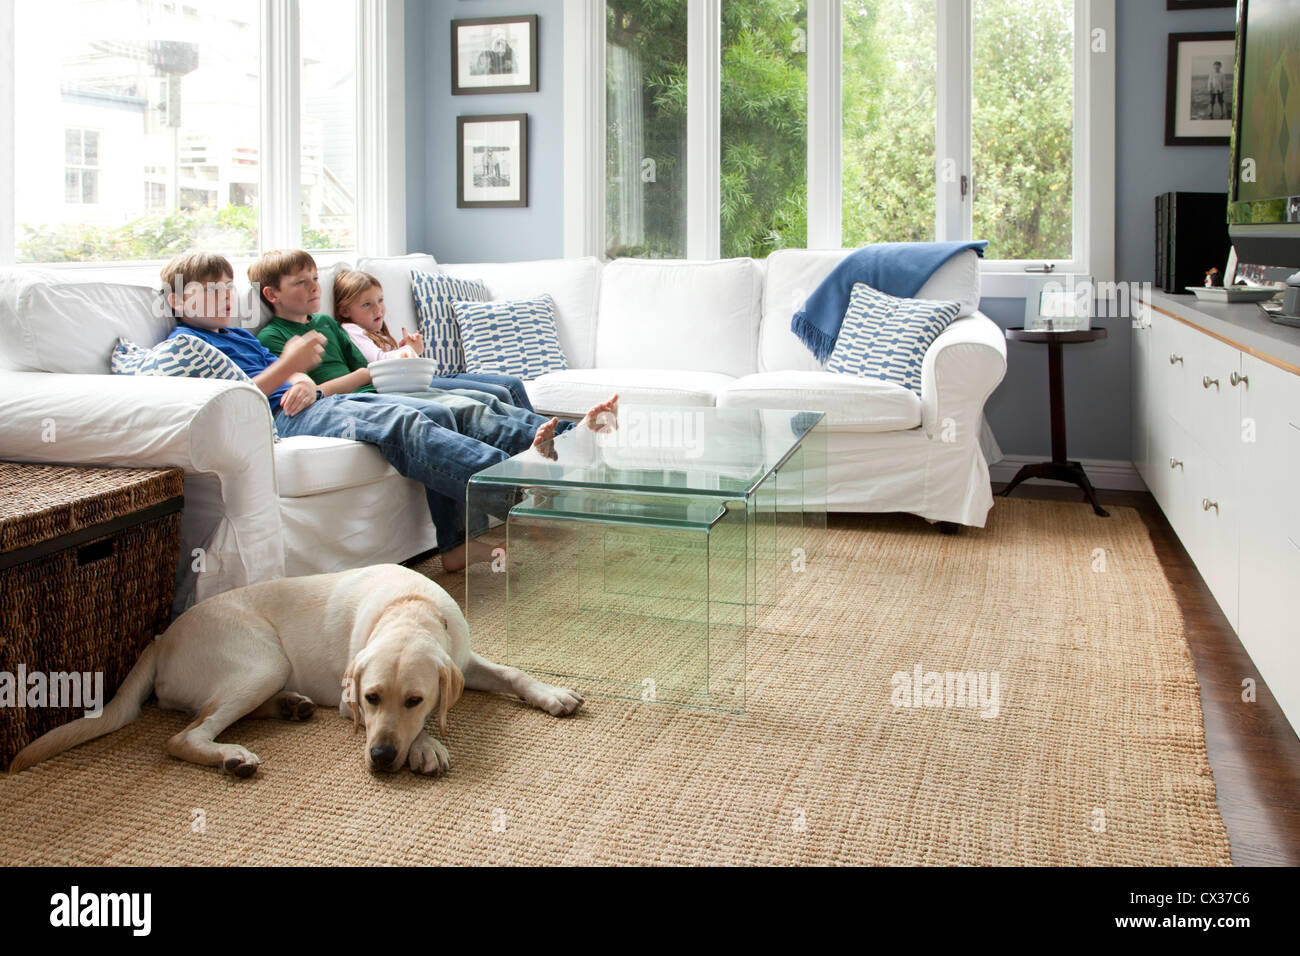 Three kids are on the couch watching tv. - Stock Image